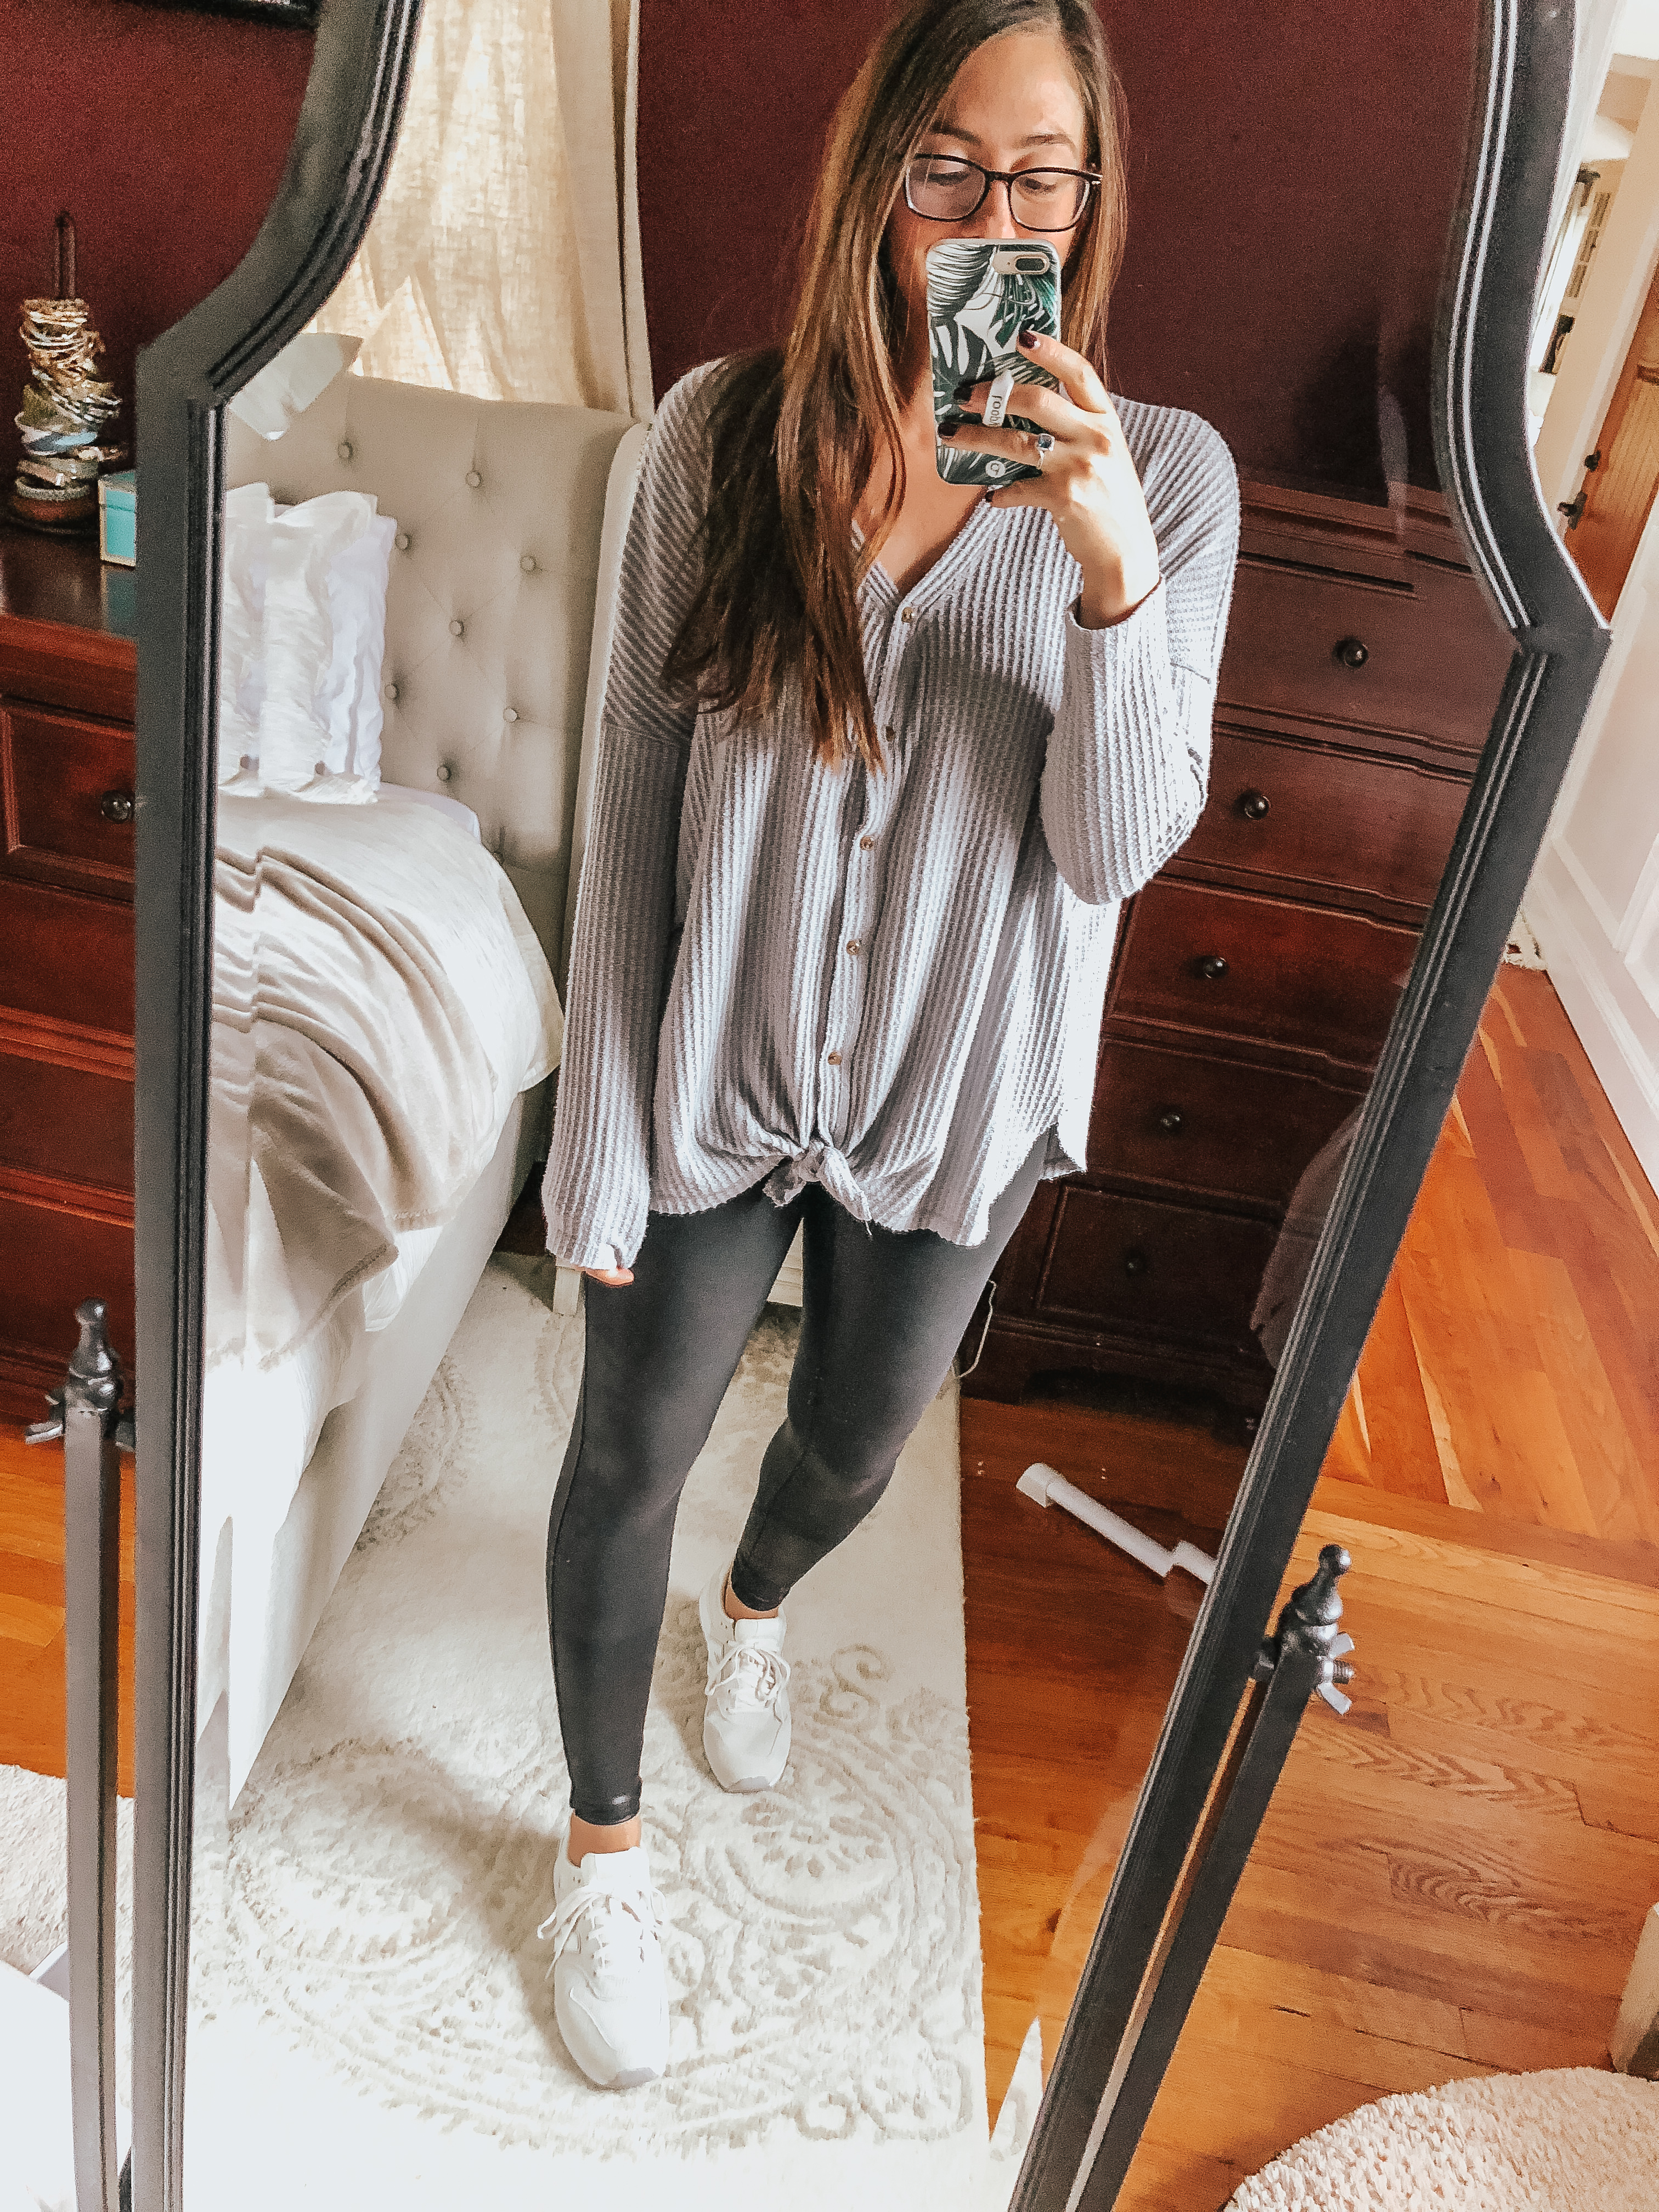 Want to start wearing Spanx faux leather leggings, but don't know how? Well, we have 5 ways to style spanx faux leather leggings! Check them out here!